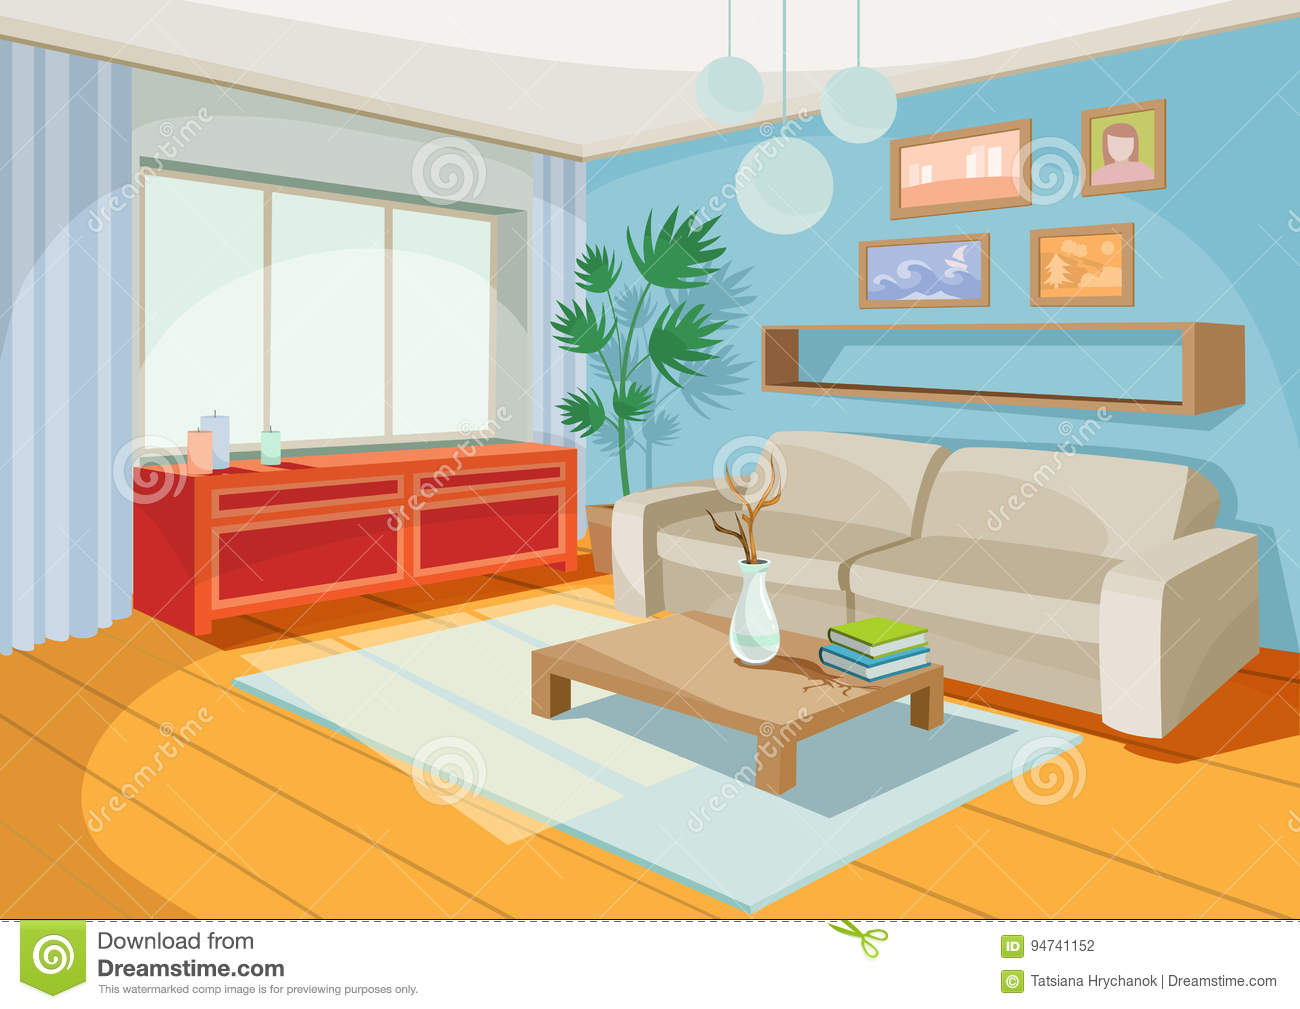 Fantastic Vector Illustration Of A Cozy Cartoon Interior Of A Home Interior Design Ideas Gresisoteloinfo